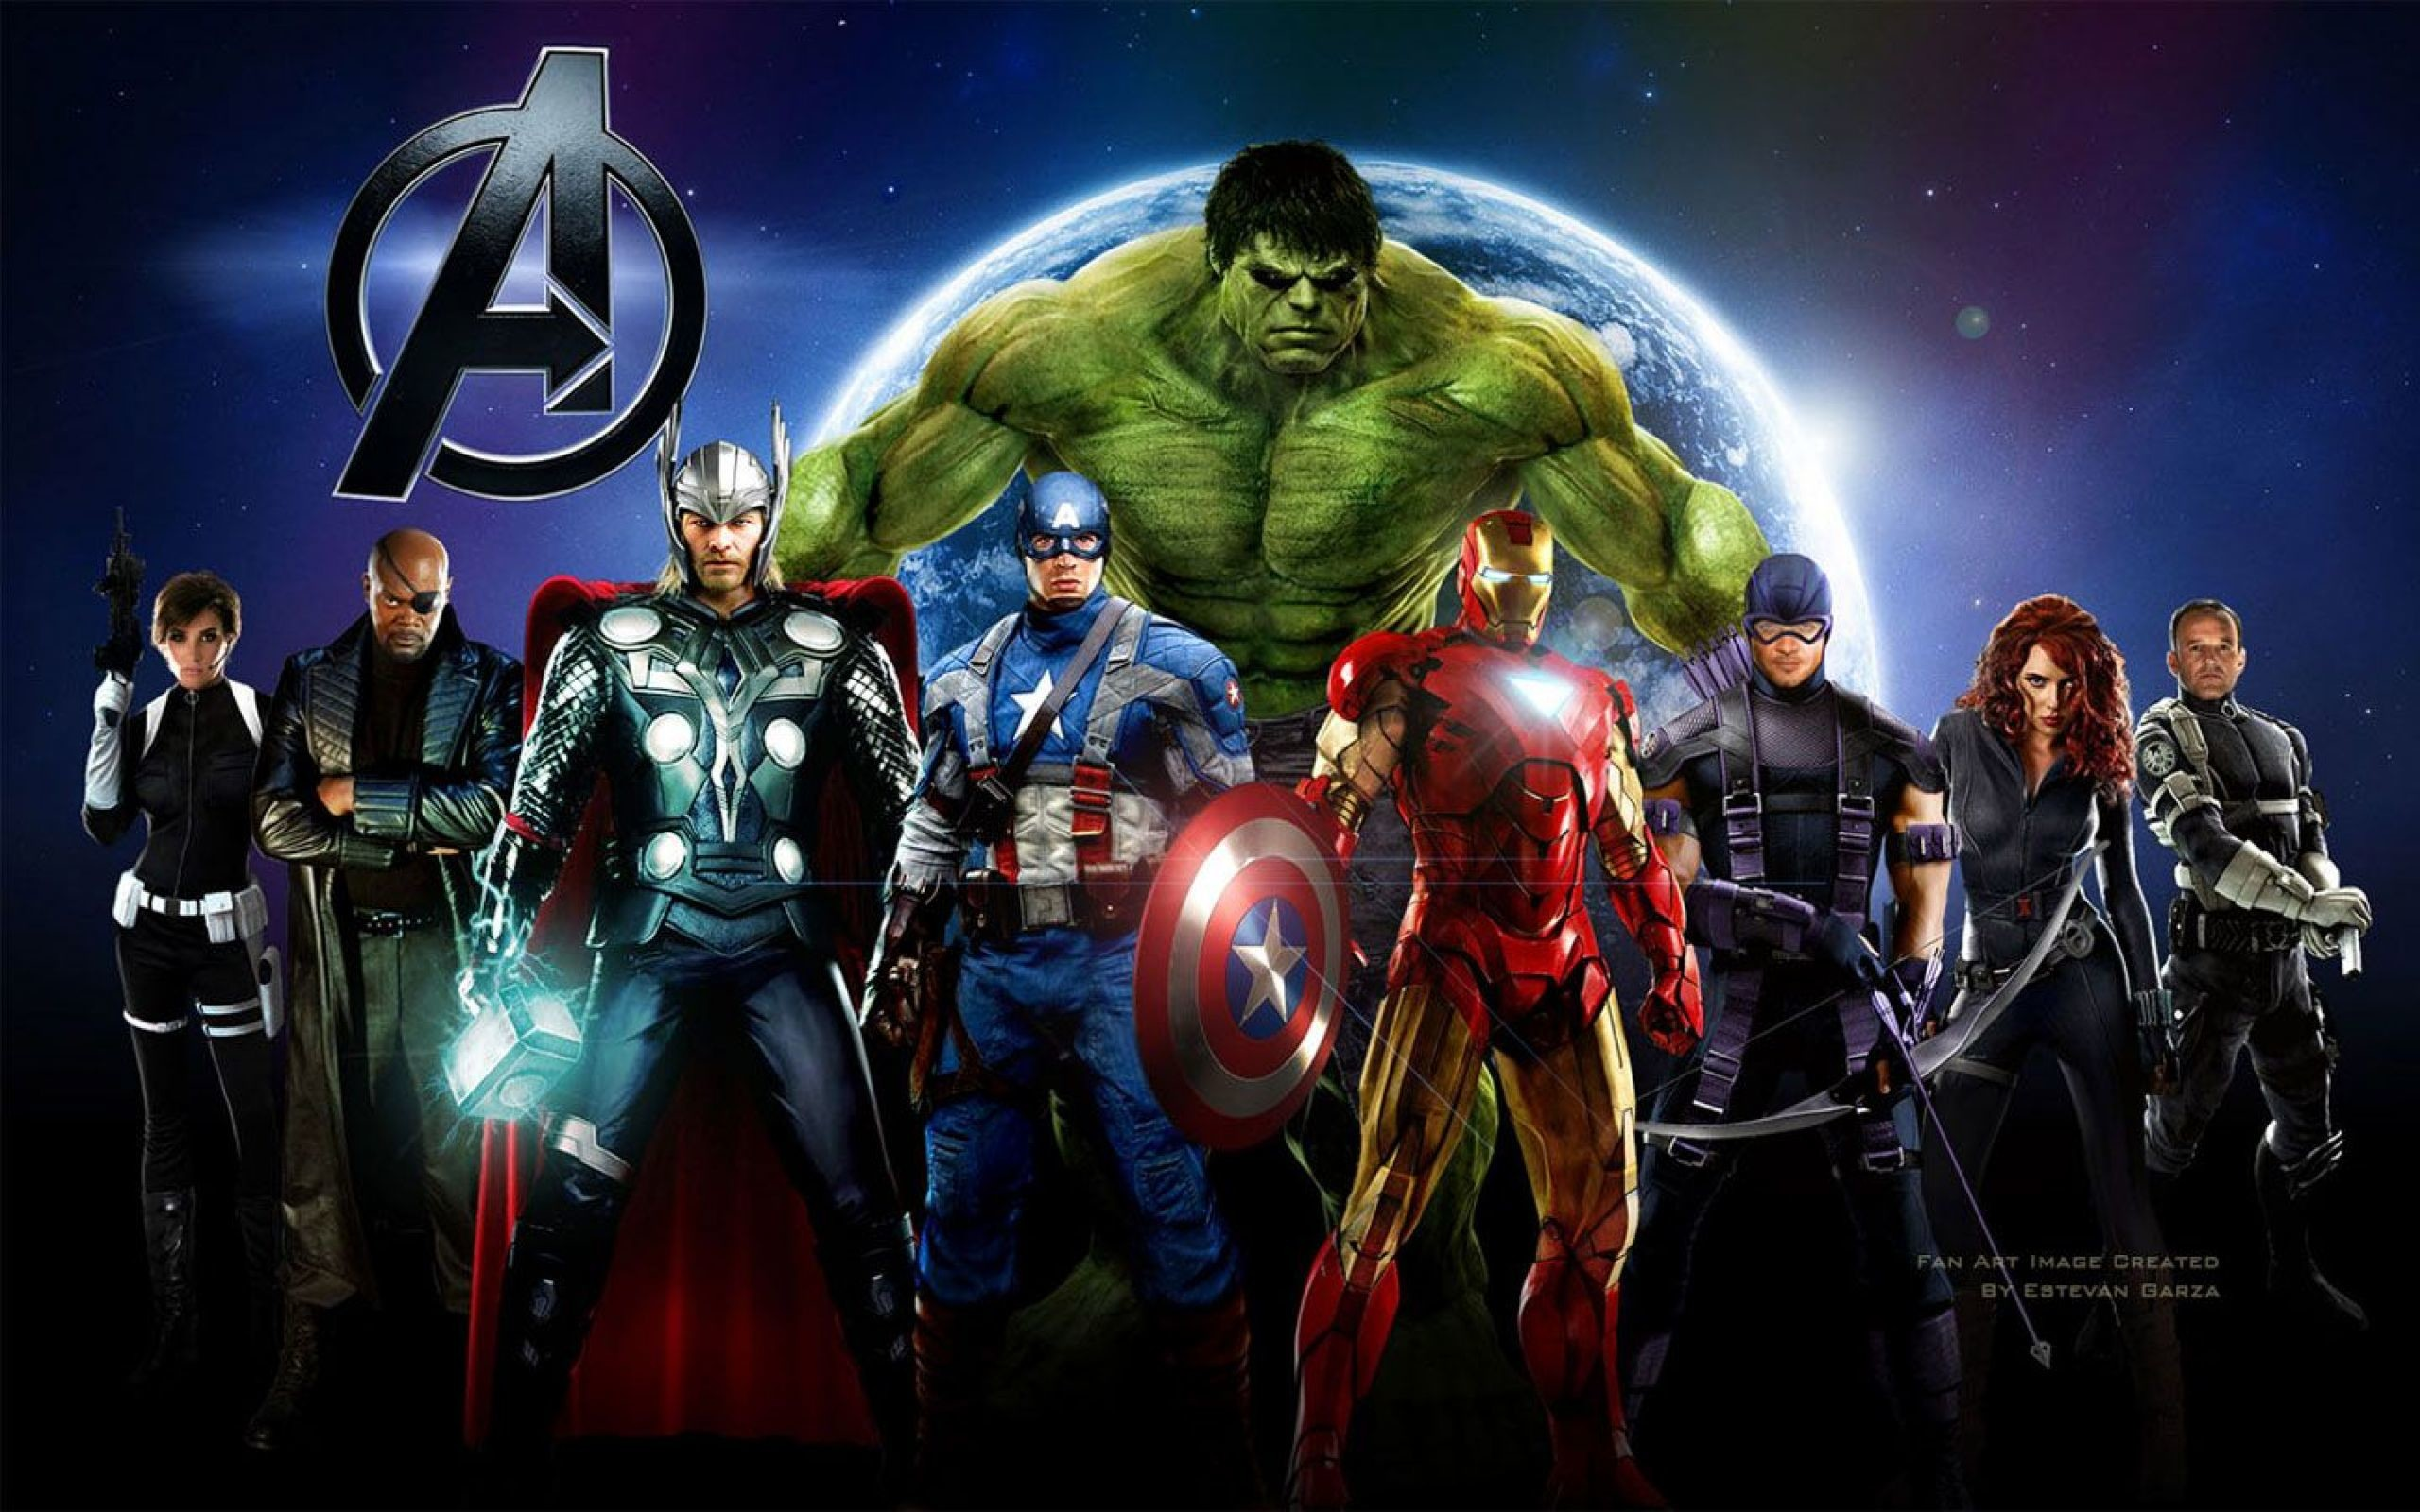 … movie time wallpaper the coolest wallpapers onlinemovie time …